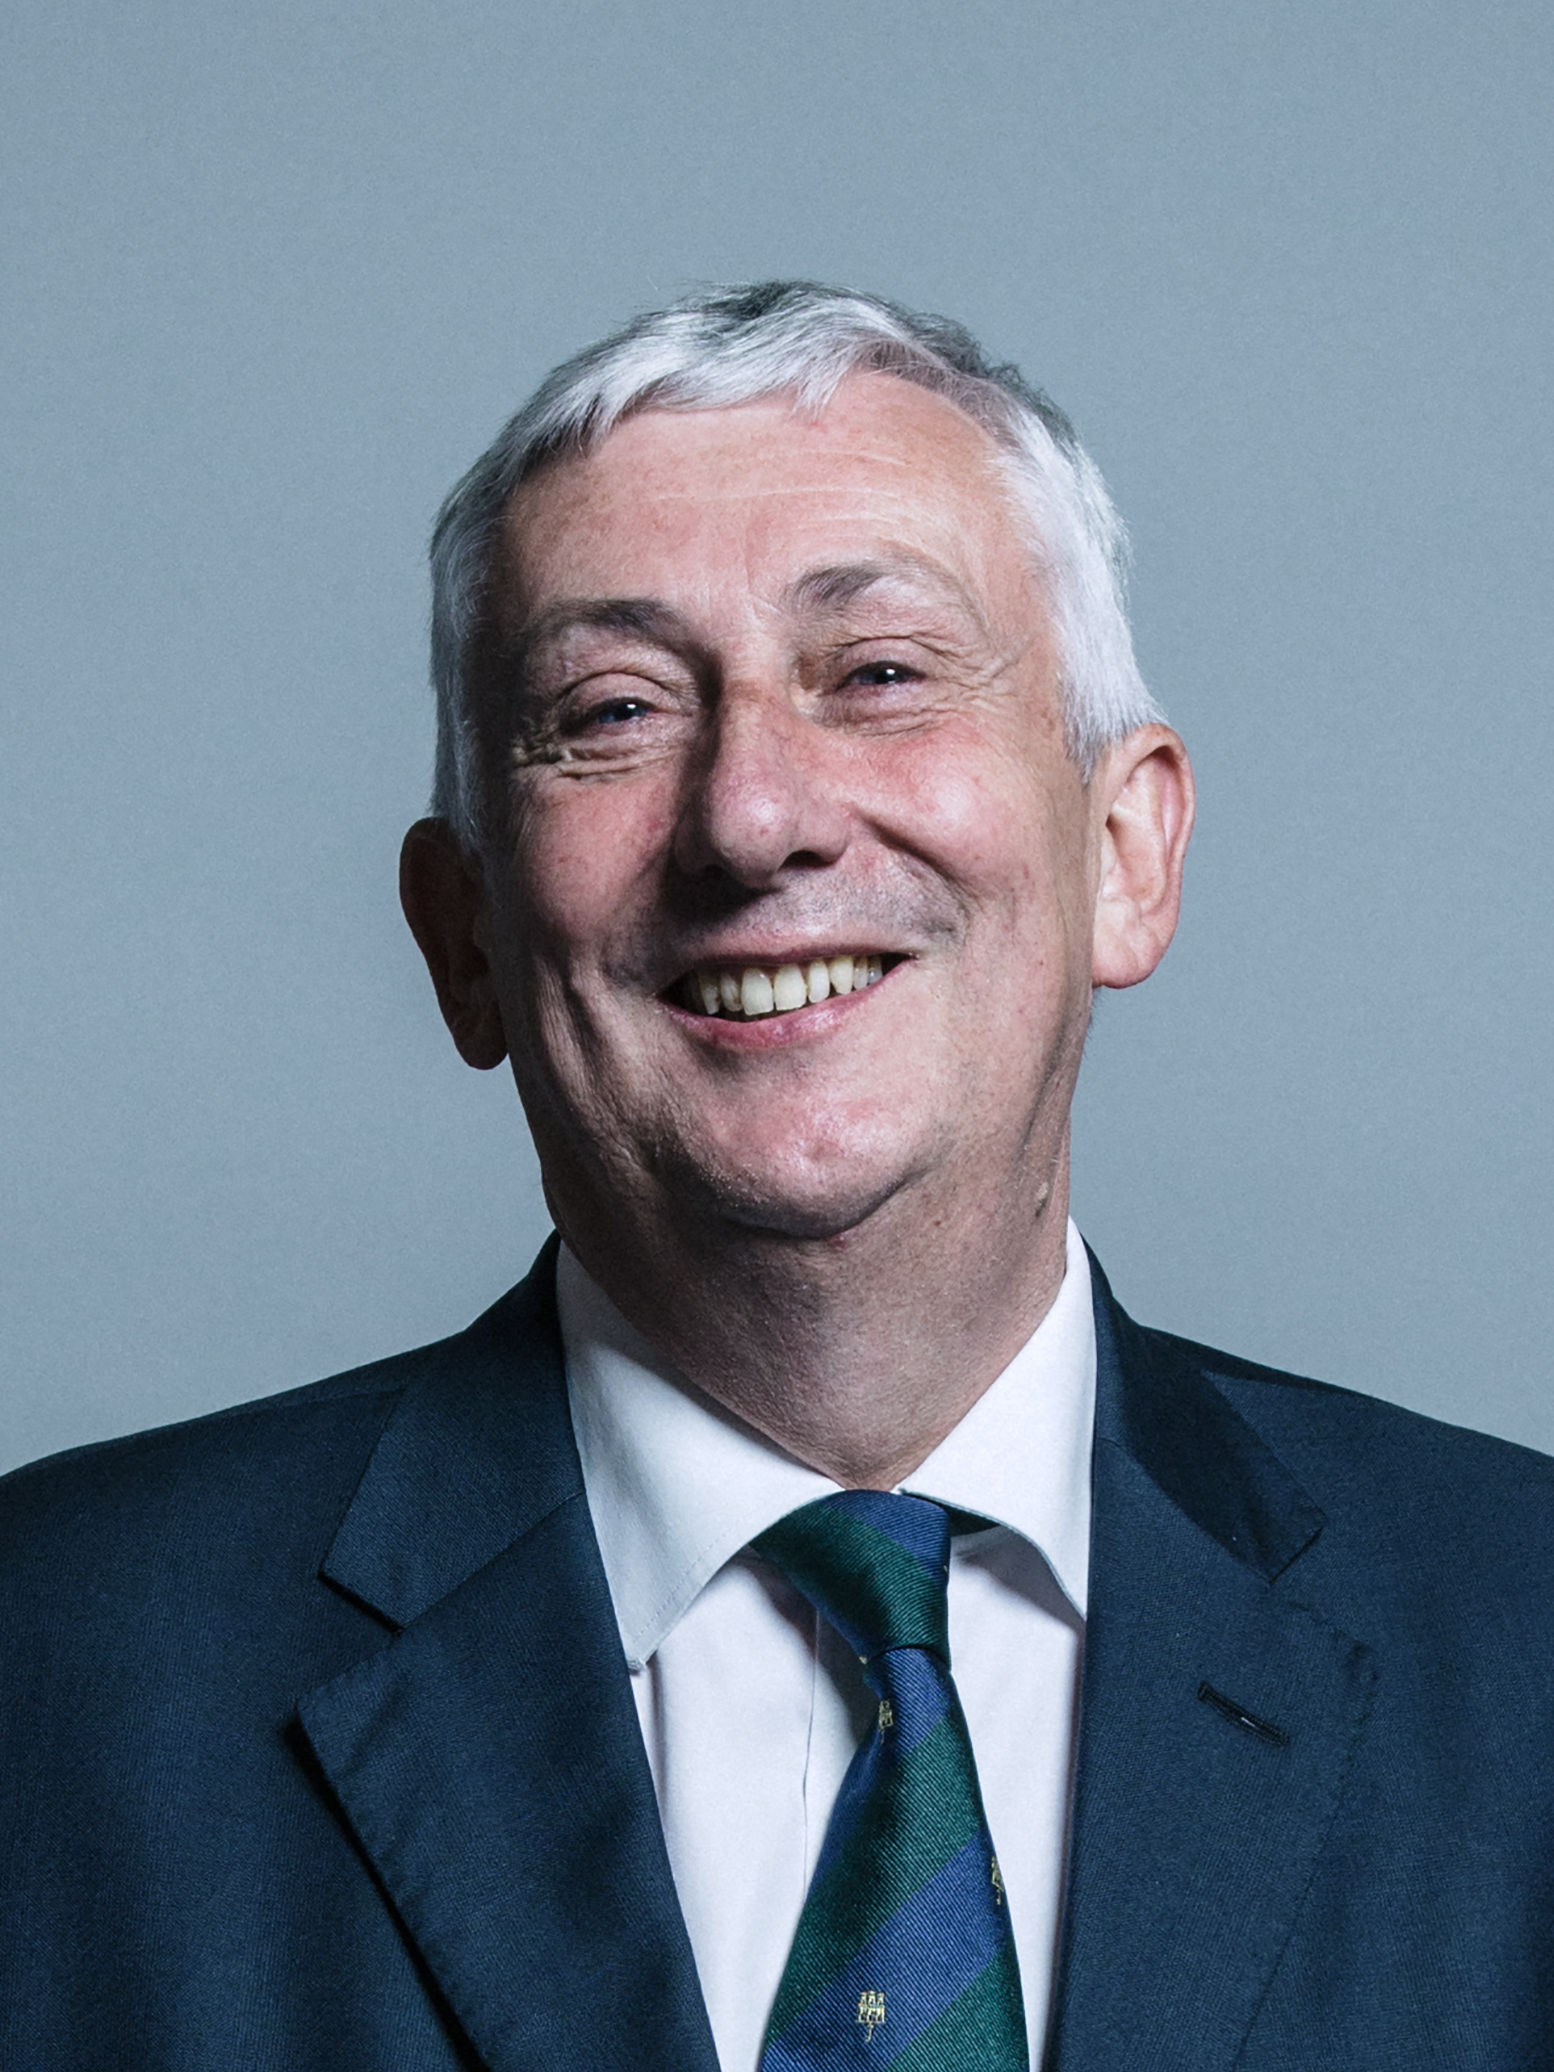 Lindsay Hoyle – 2021 Statement on the Murder of David Amess